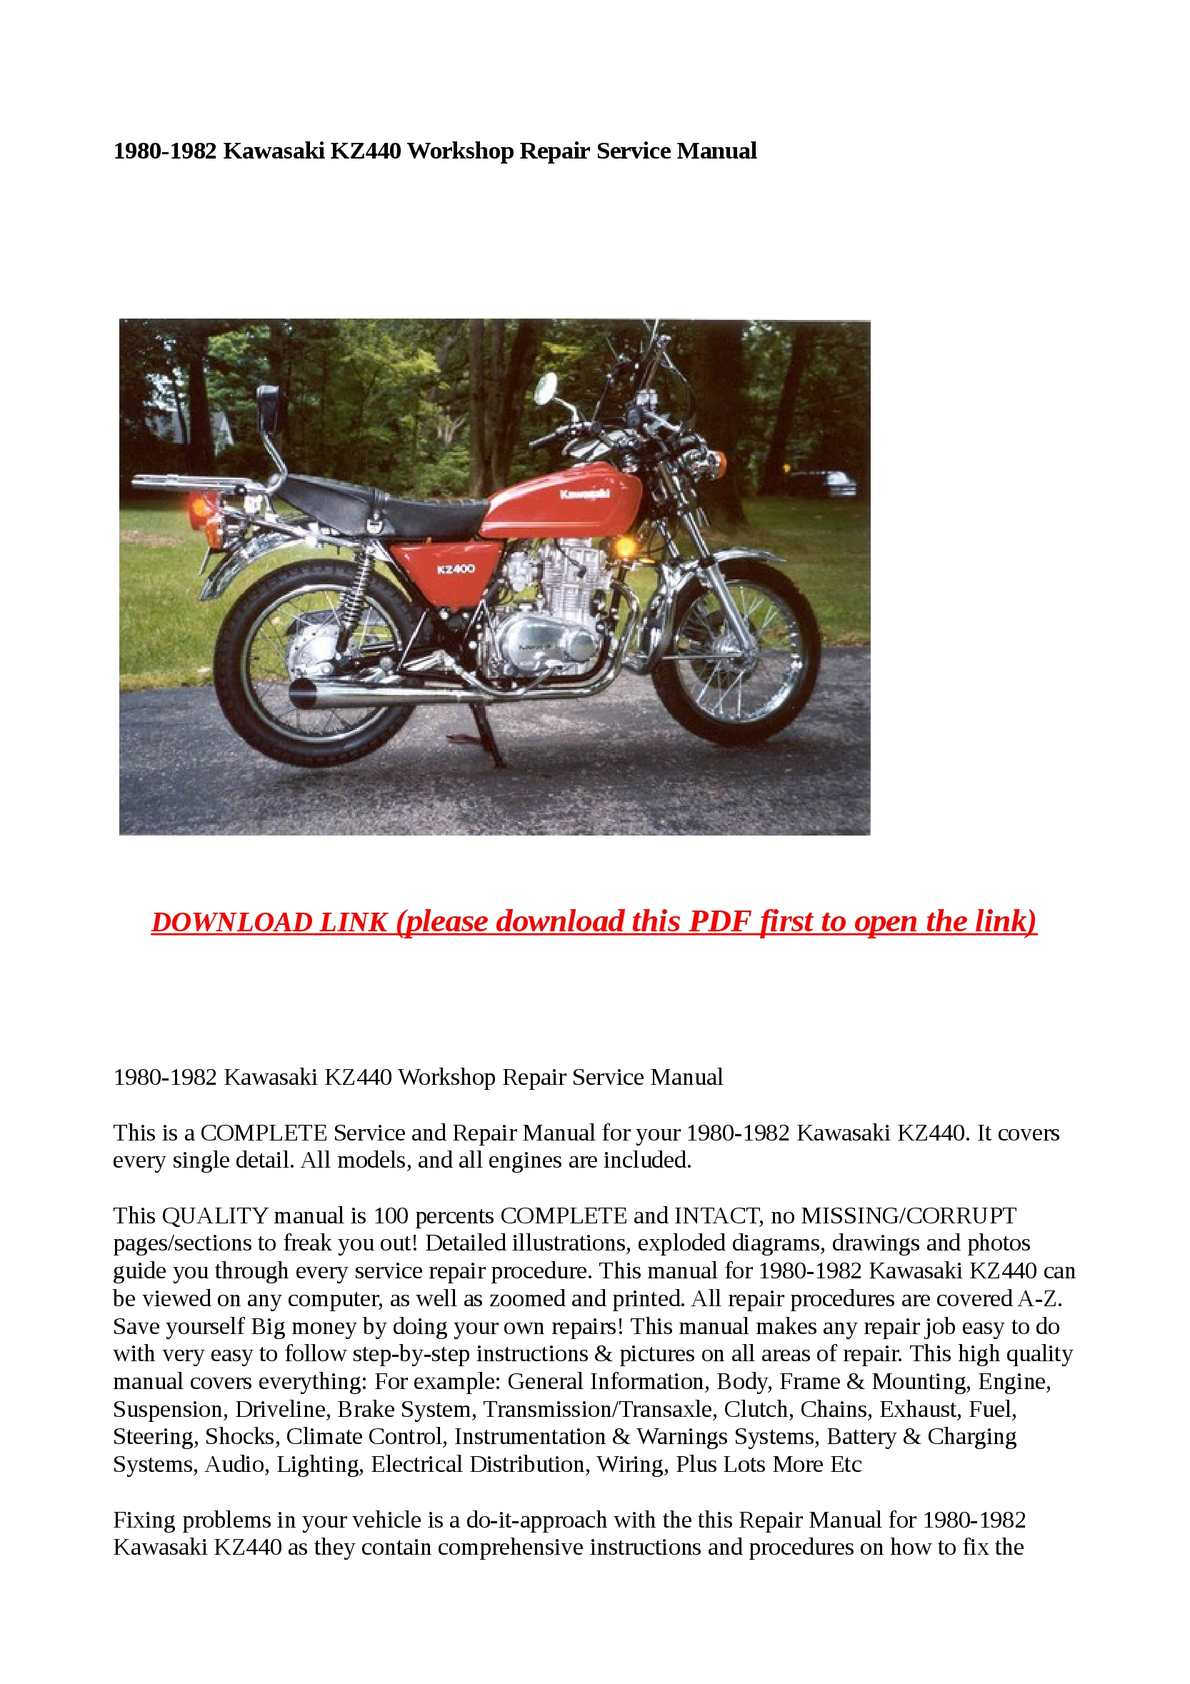 1980 kawasaki kz440 lights wiring diagram   41 wiring